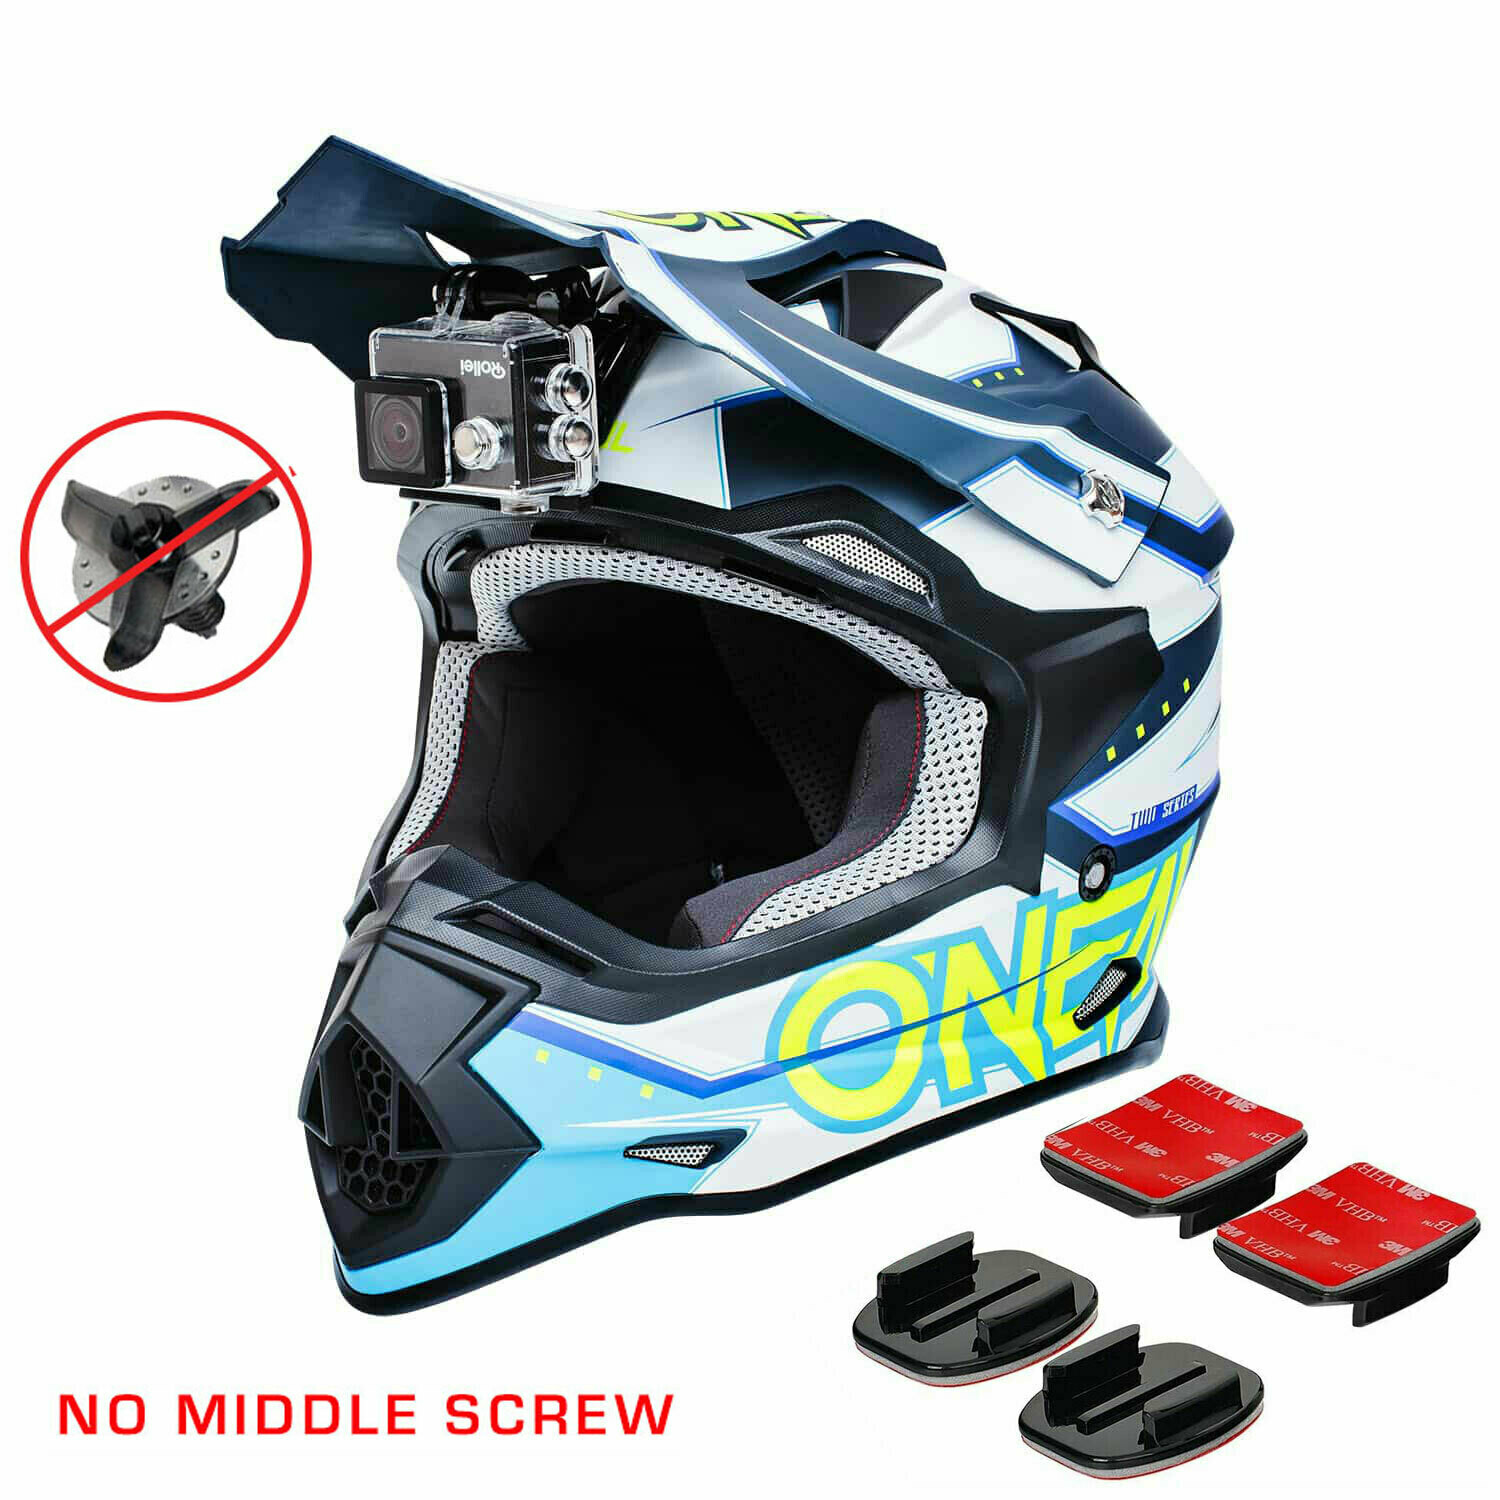 Universal Sticky Mount-NINJA MOUNT (For Helmets WITHOUT a middle screw under the visor)